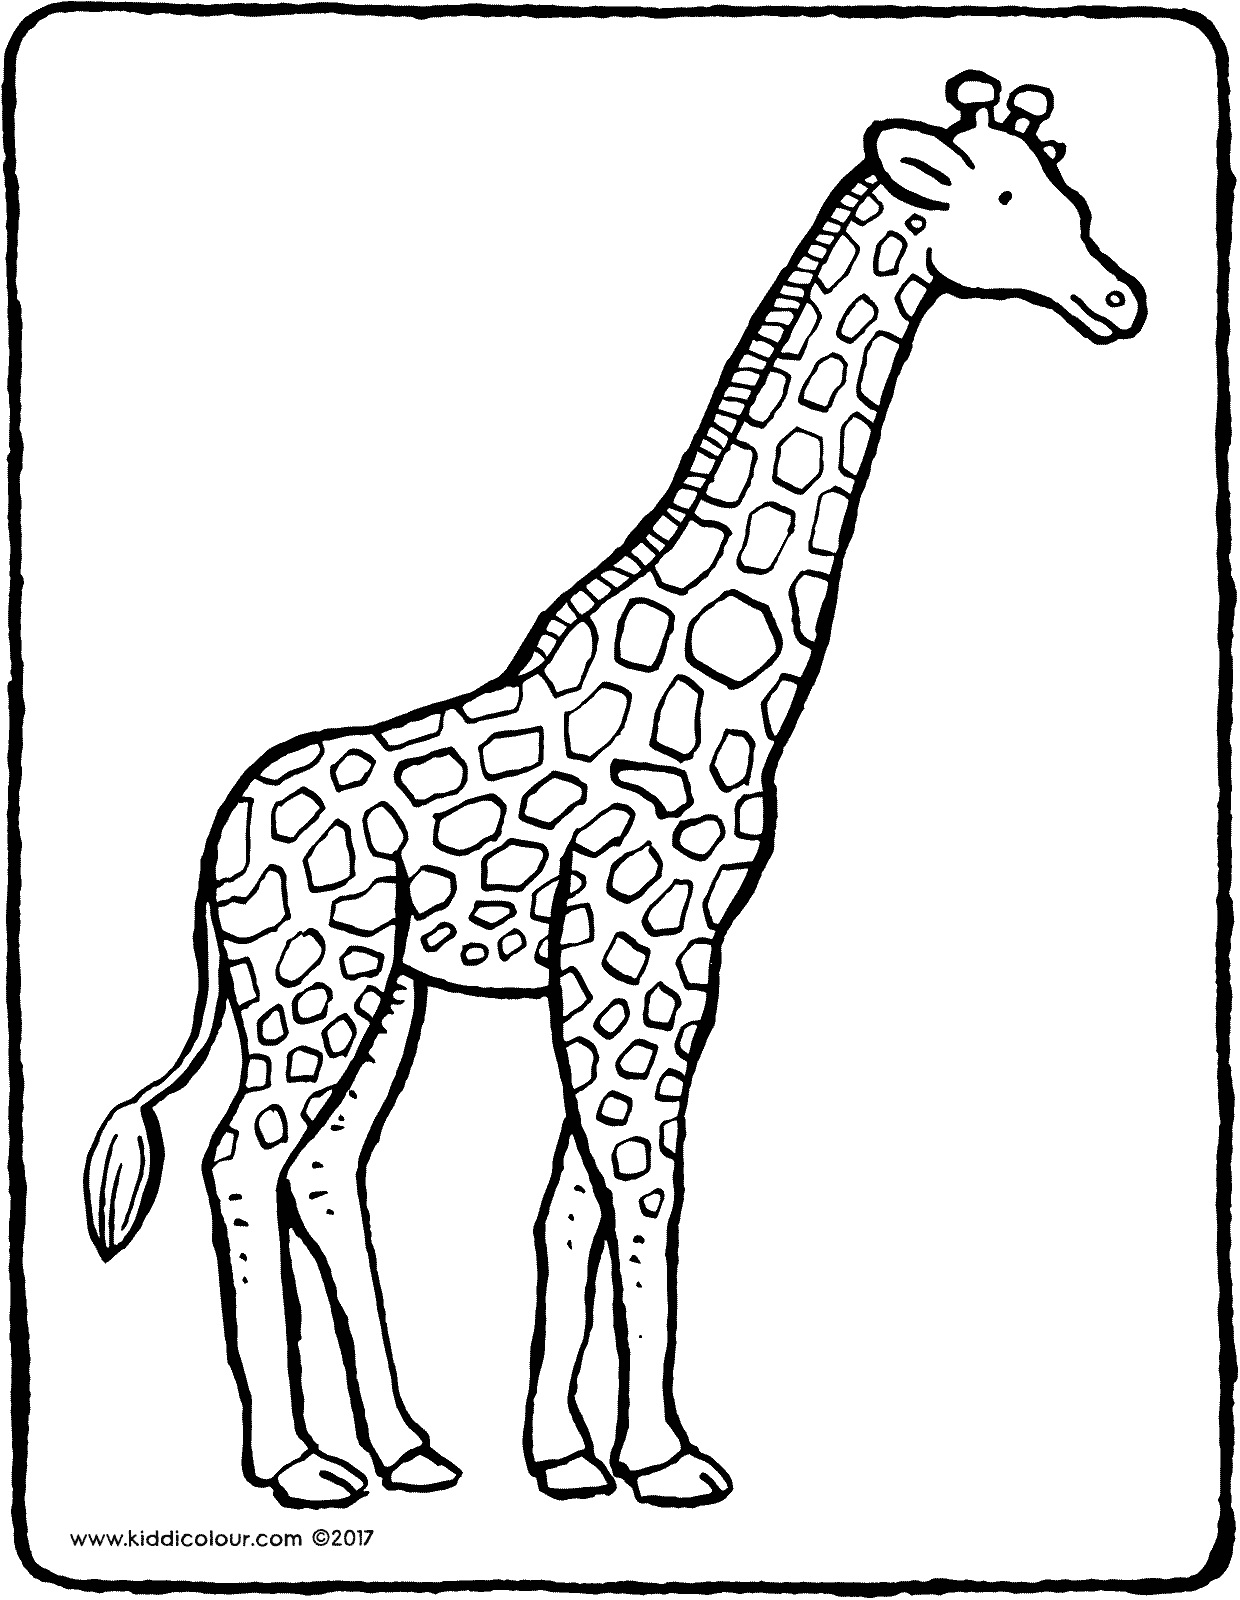 giraffe colouring page drawing picture 01V